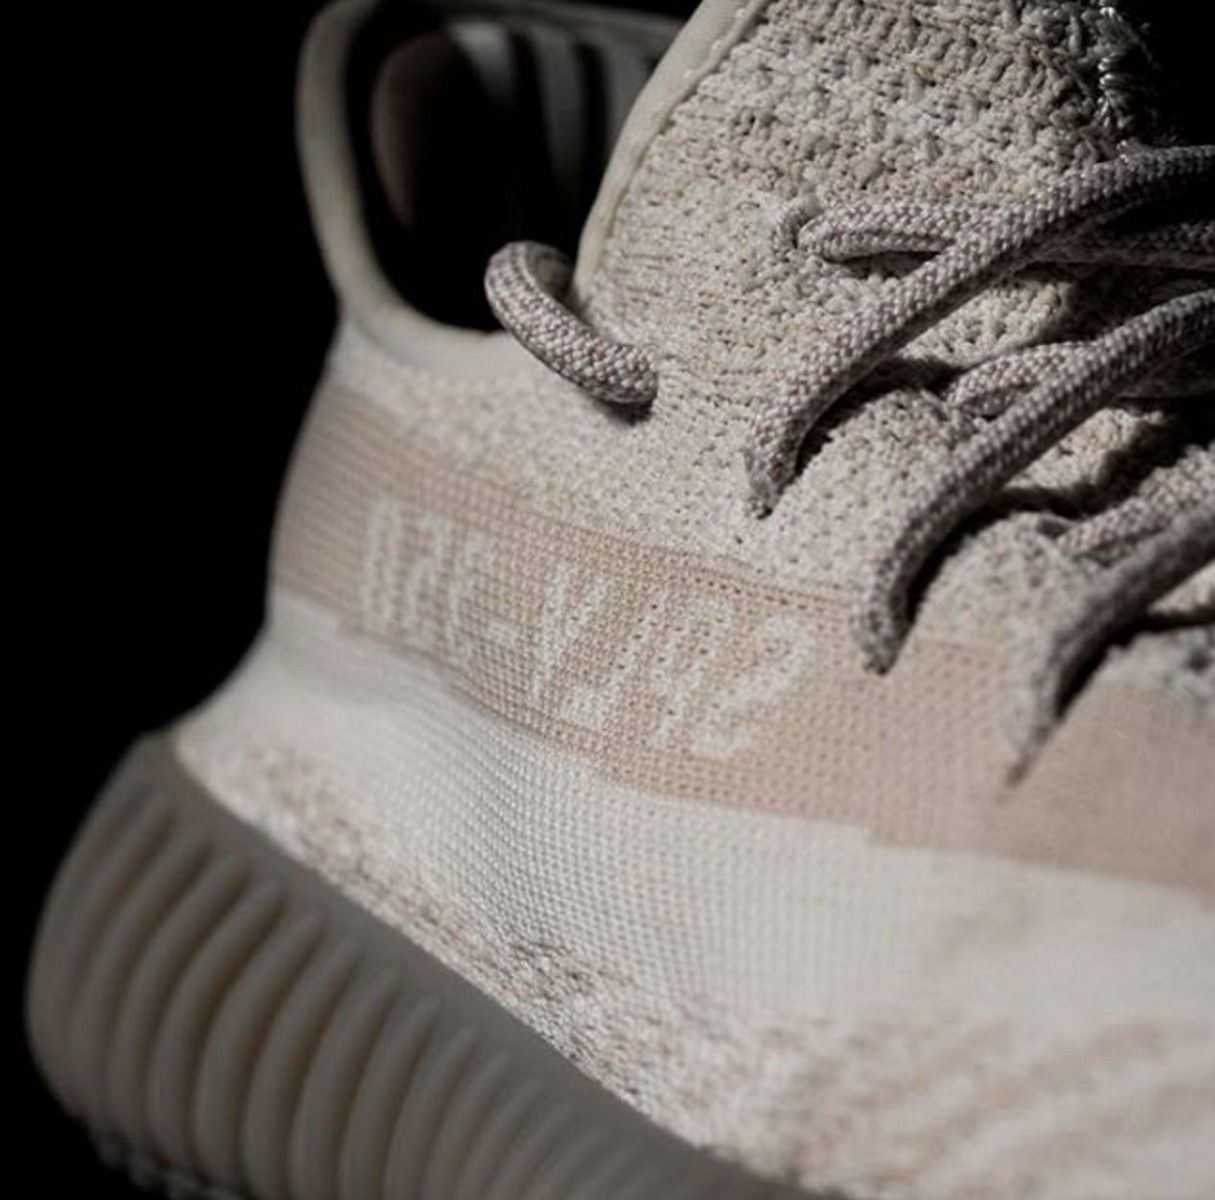 4fab17cc8 The first colorway of the brand new adidas YEEZY Boost 350 V2 has just  launched this past weekend and most people are already eager to find out  which ...